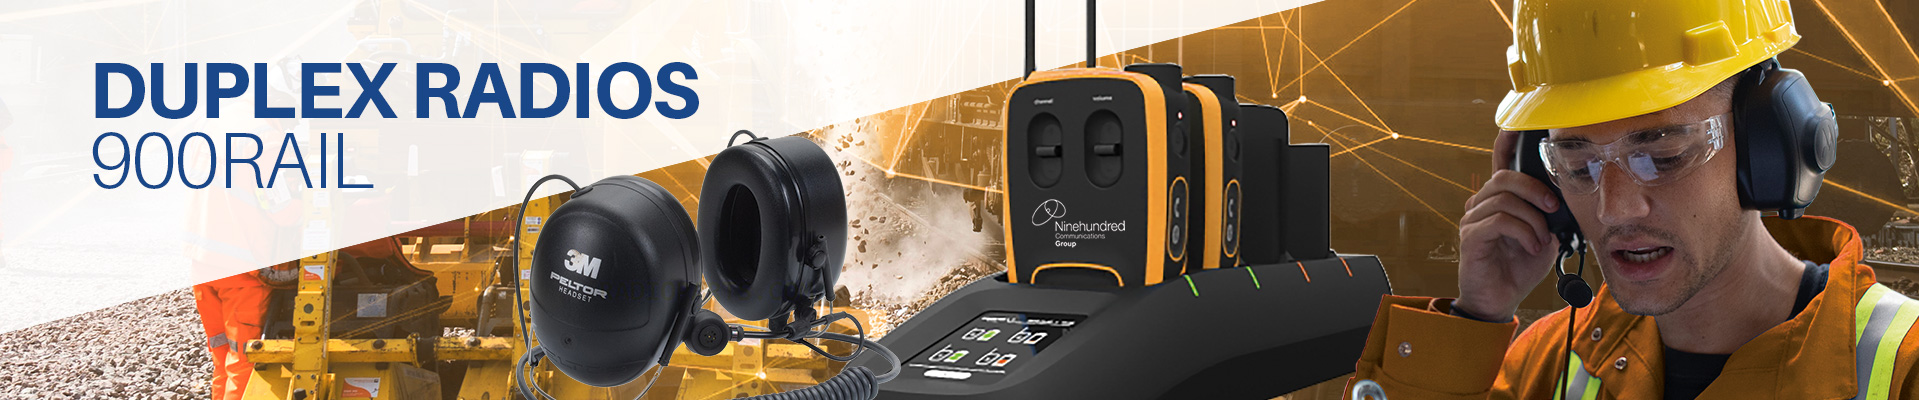 Full duplex Vokkero radios for the rail industry banner image